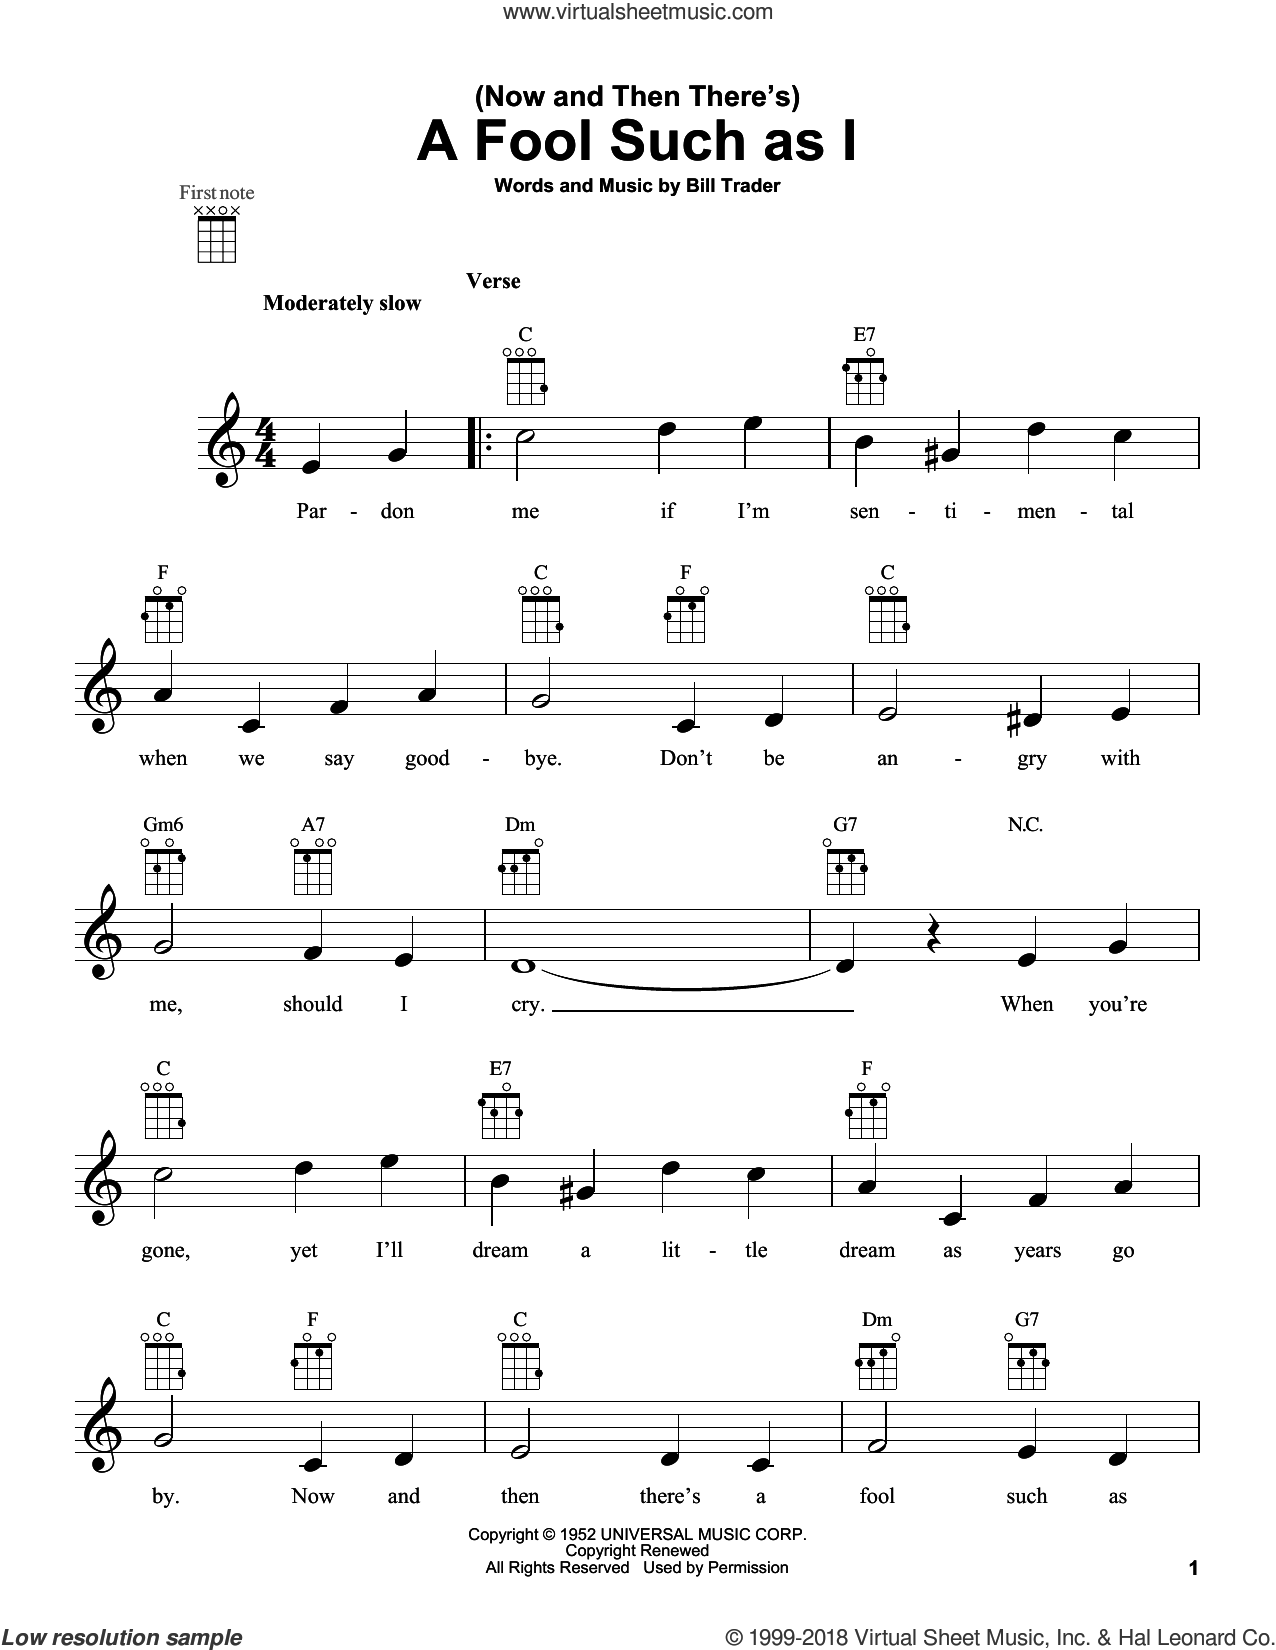 (Now And Then There's) A Fool Such As I sheet music for ukulele by Bob Dylan, Elvis Presley and Hank Snow, intermediate skill level